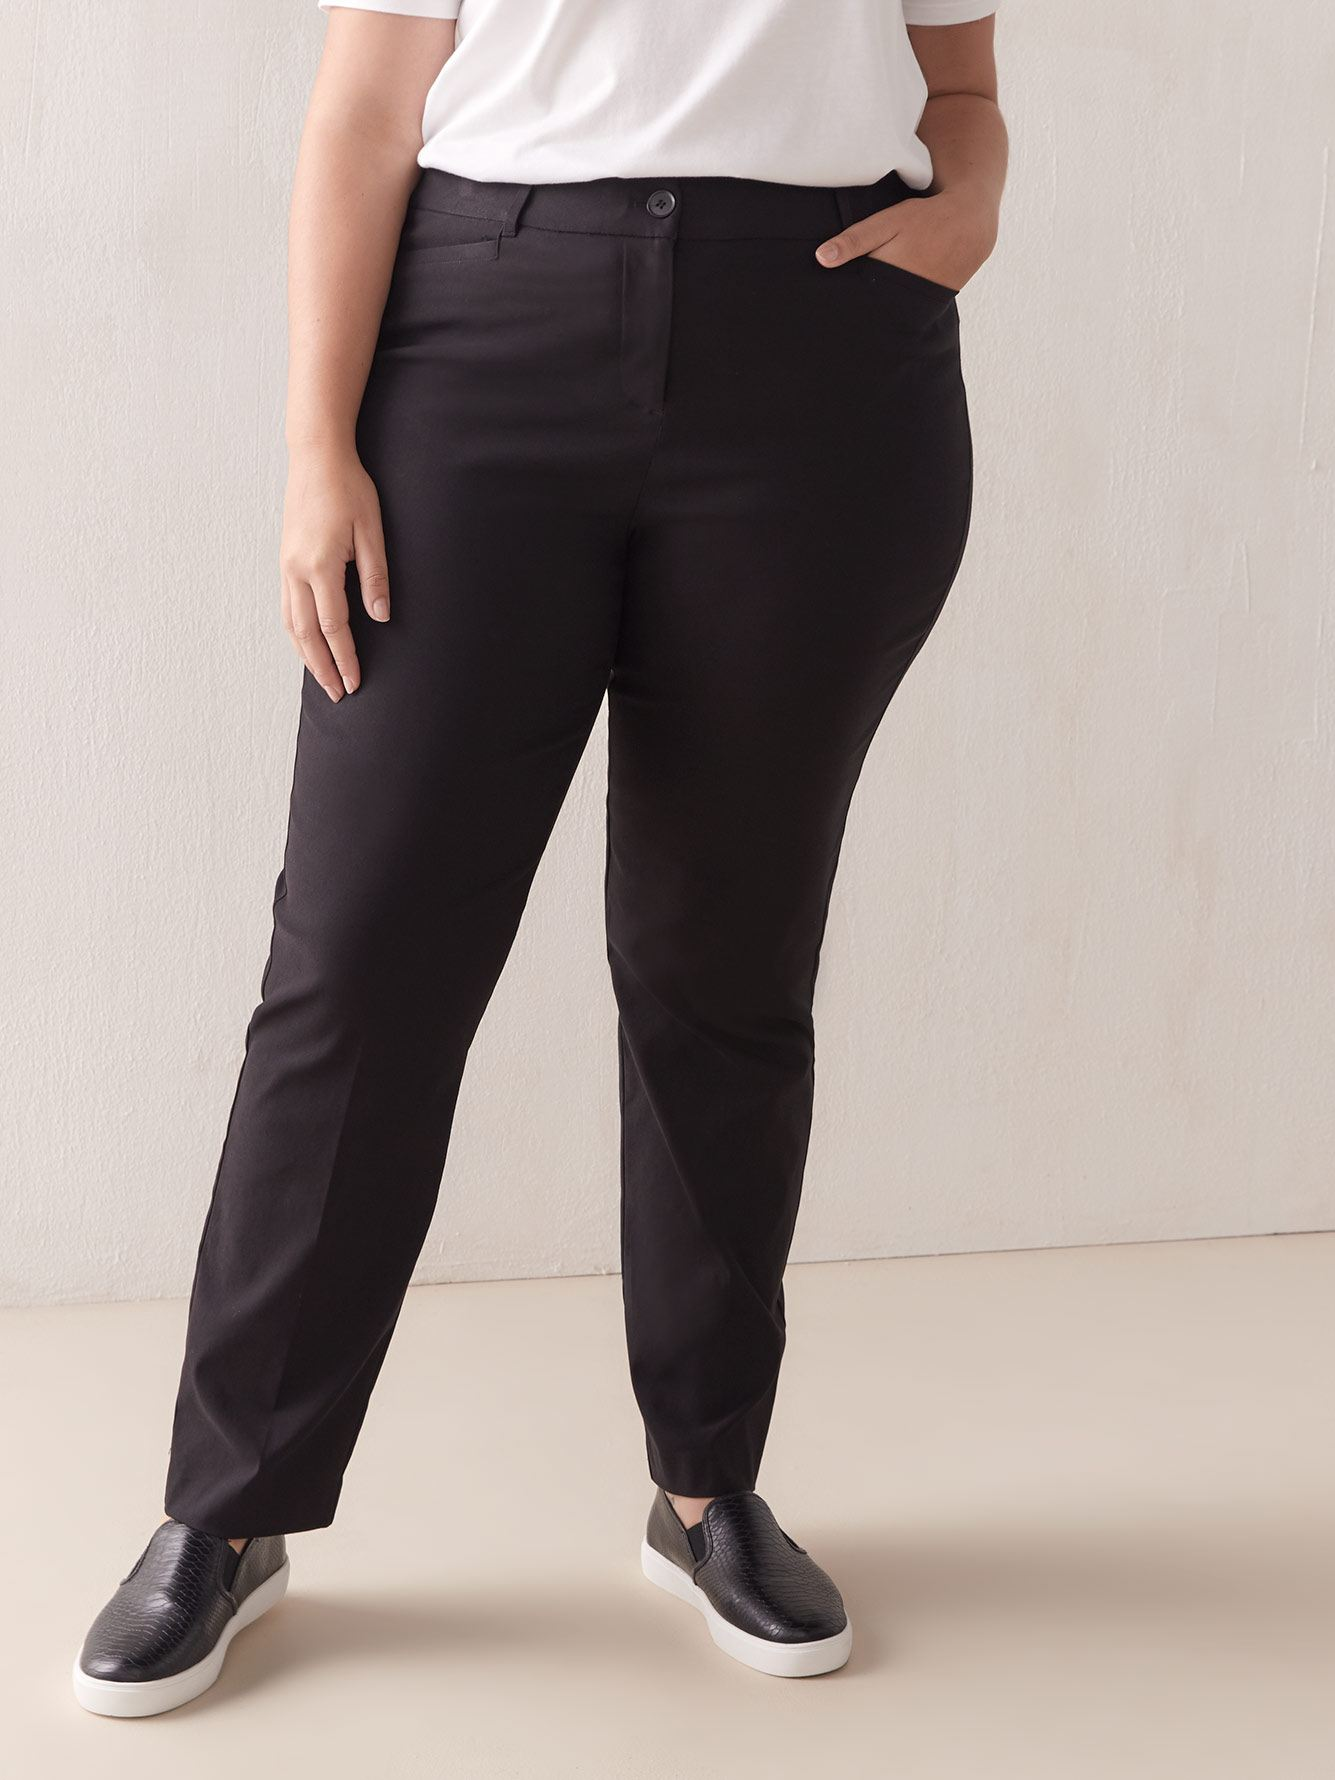 Savvy, Black Straight Leg Pant - In Every Story